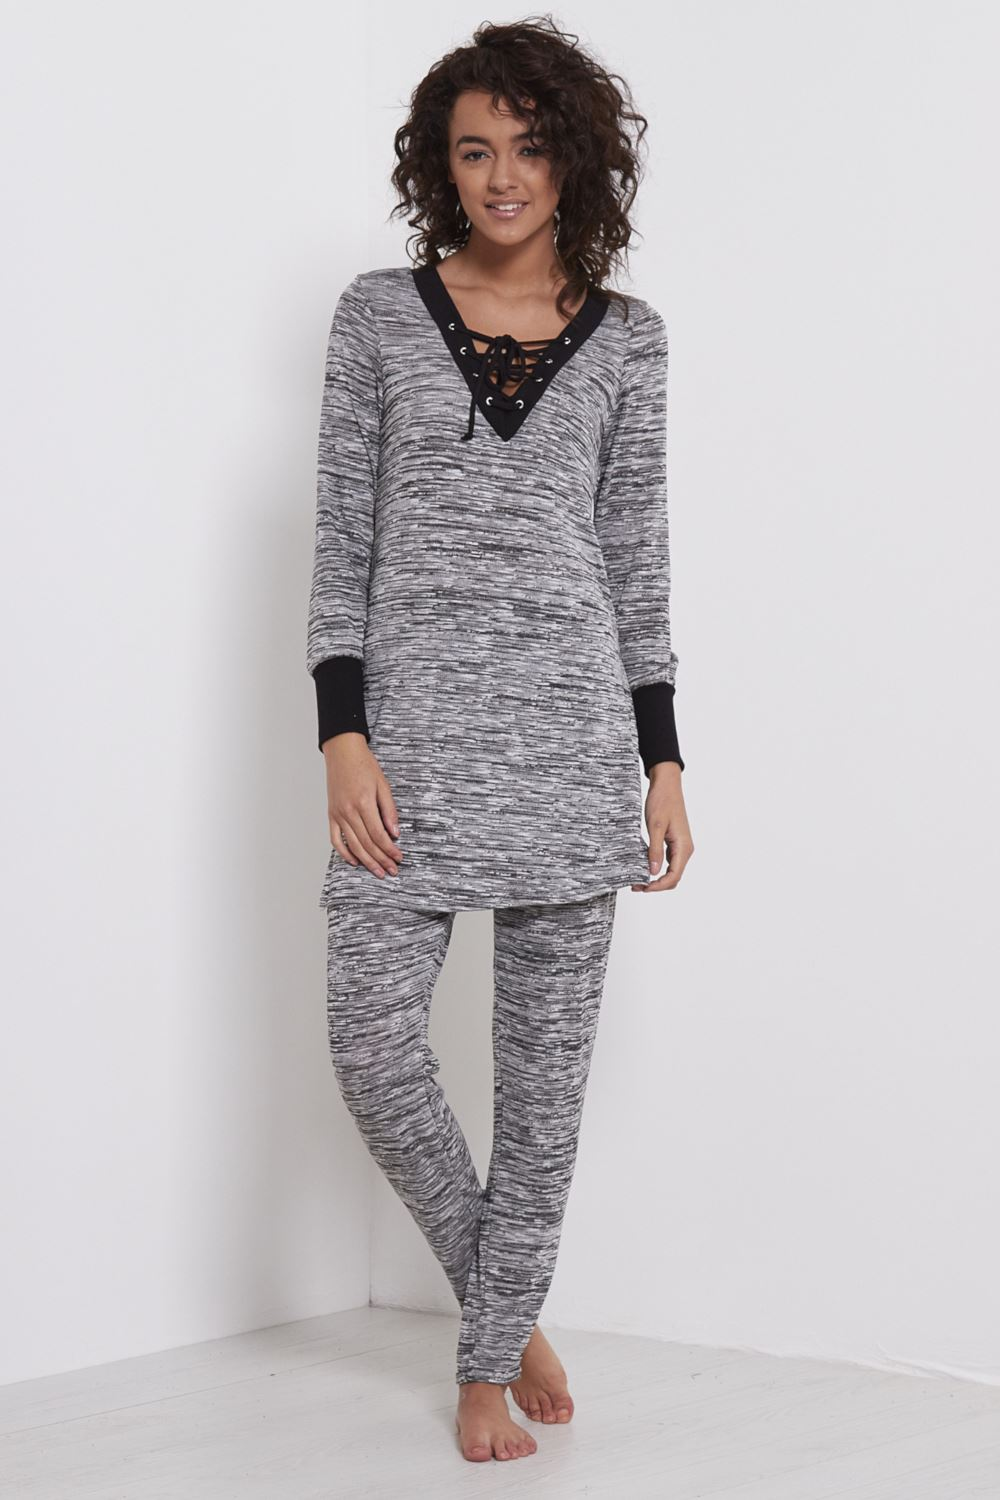 Shop for and buy ladies loungewear online at Macy's. Find ladies loungewear at Macy's.